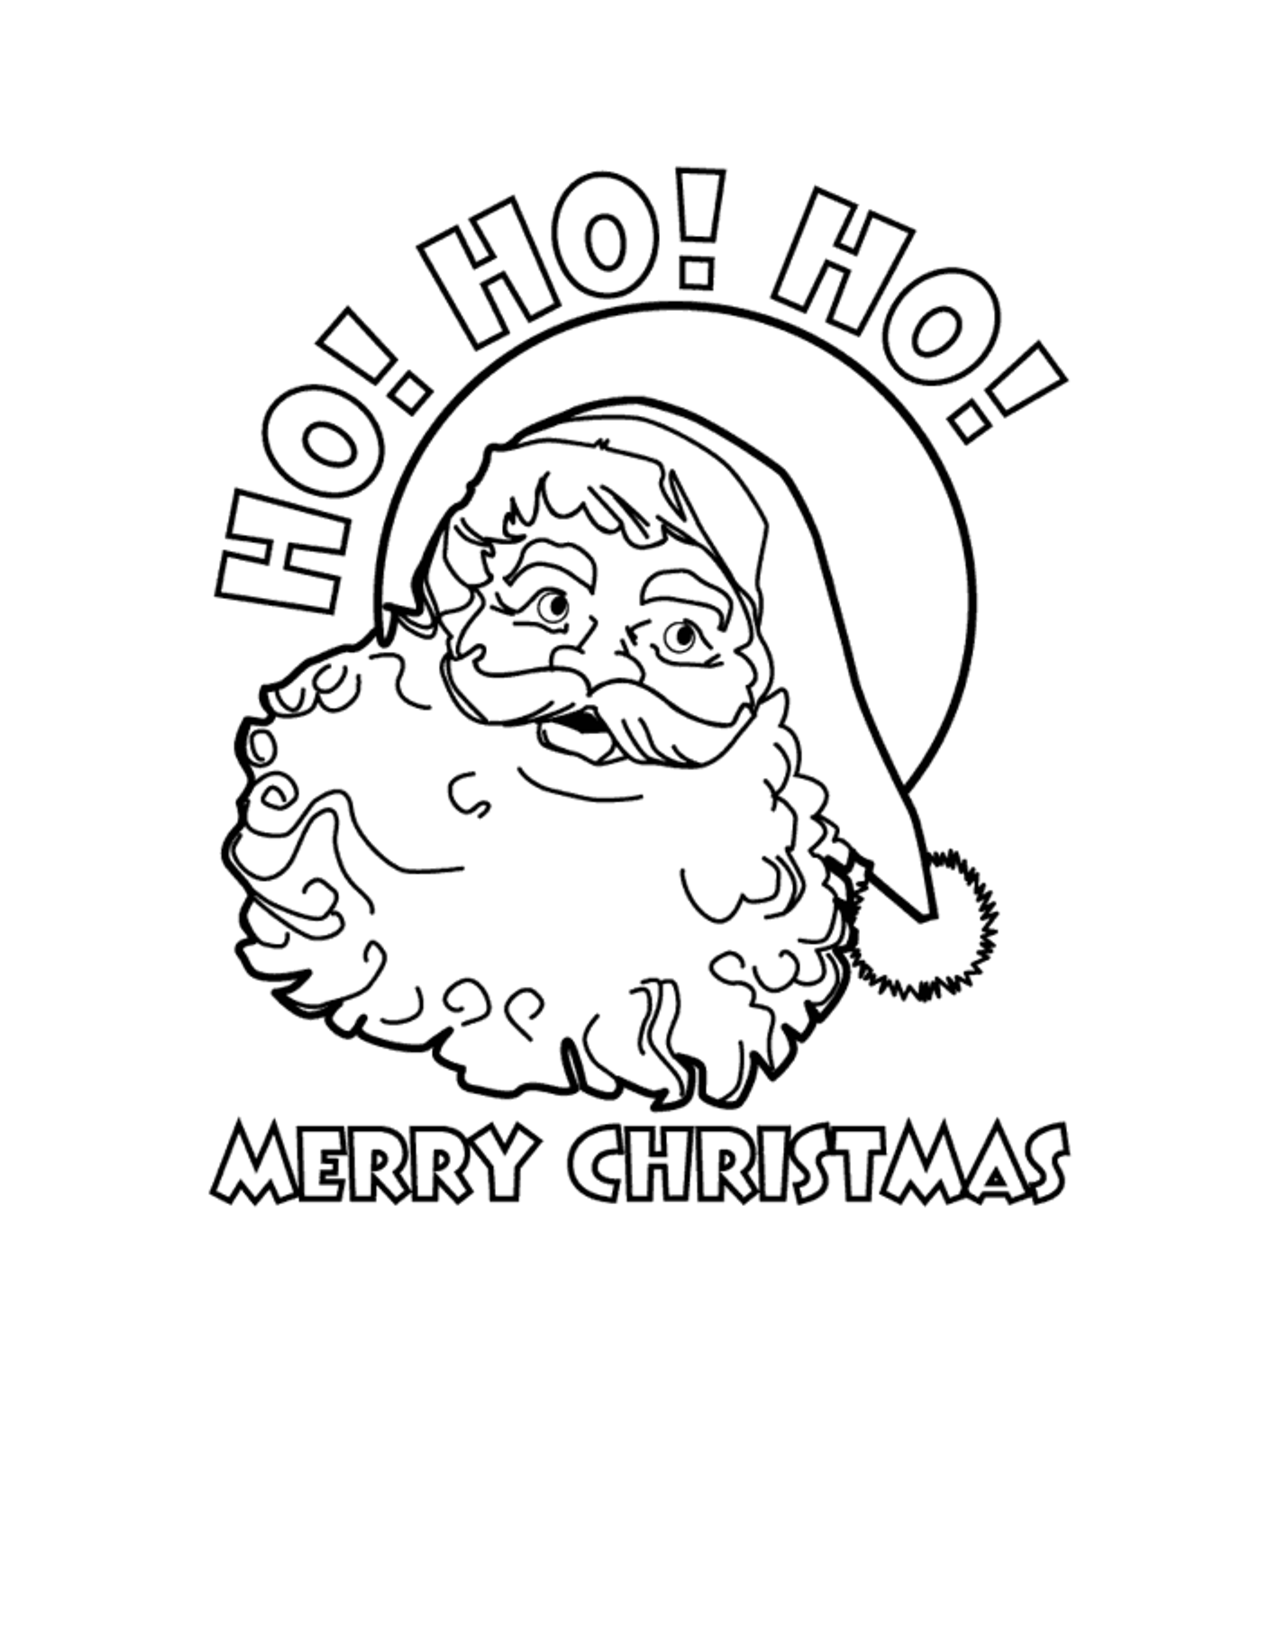 Merry Christmas Printable Coloring